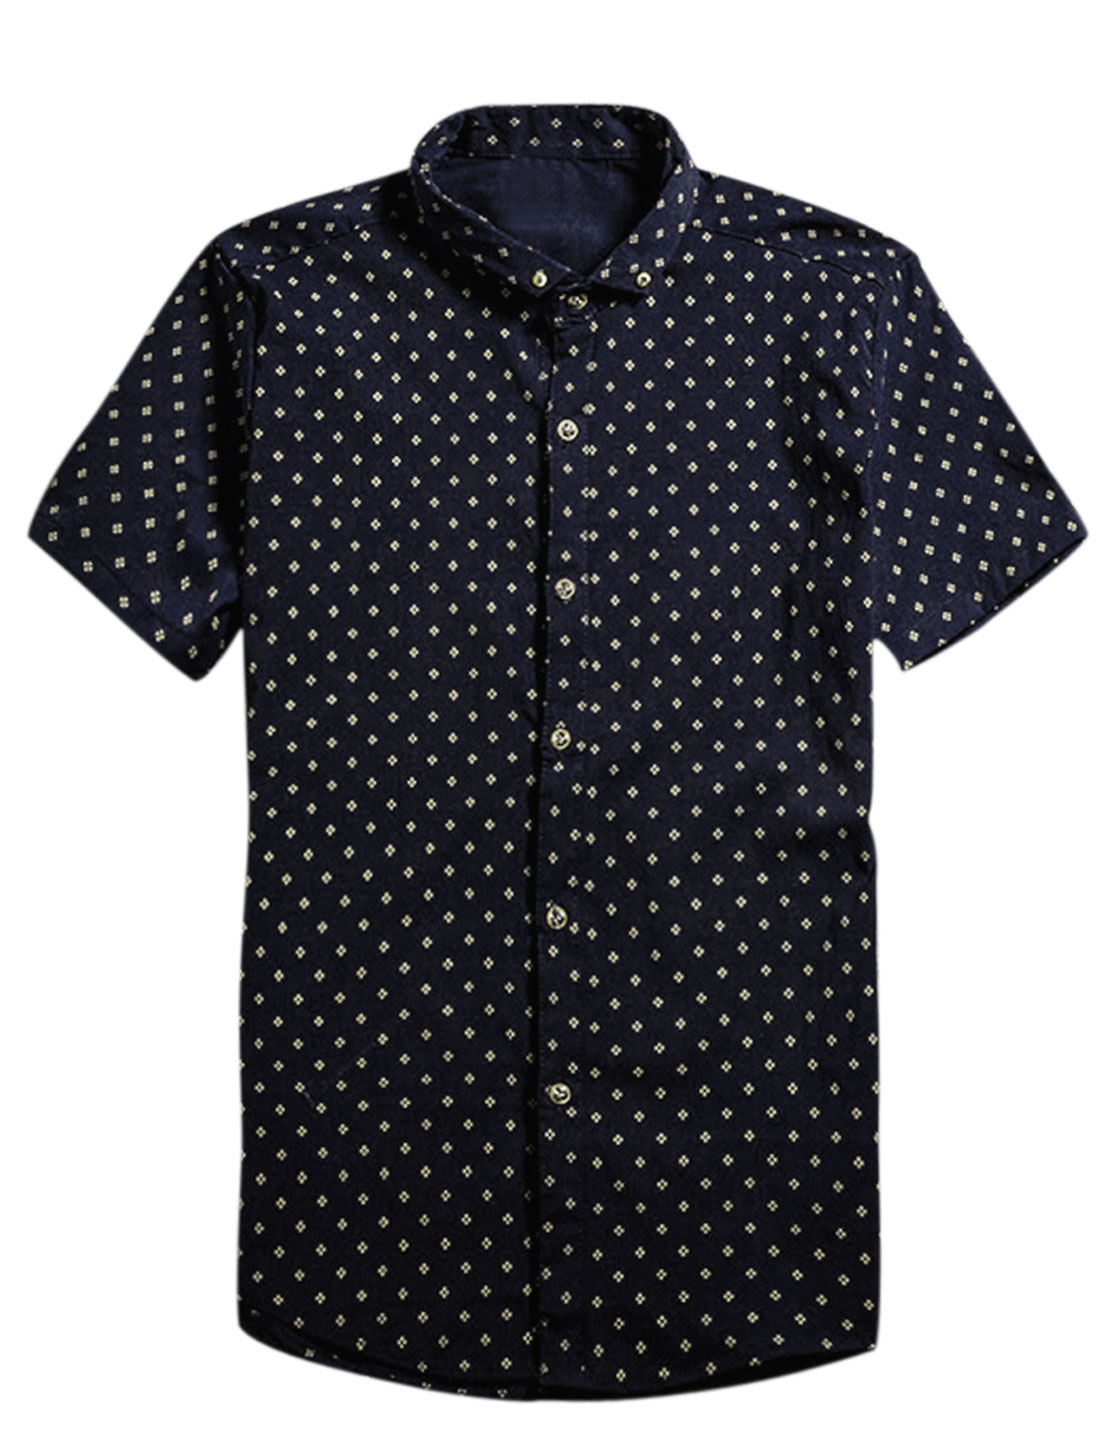 Men Short Sleeve Point Collar Button Down Casual Shirt Navy Blue S